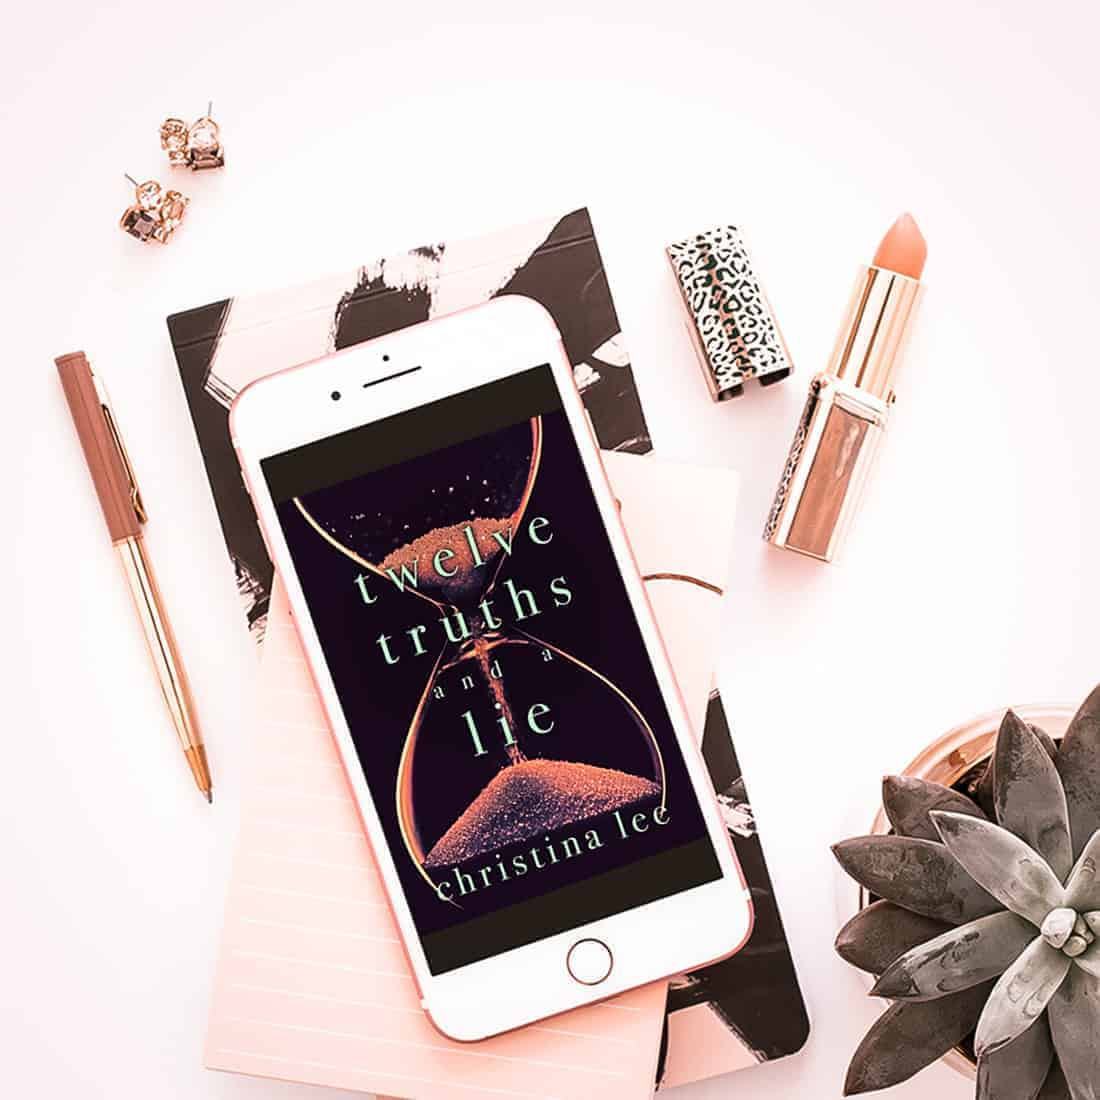 Enjoy this excerpt from Twelve Truths and a Lie by Christina Lee, a contemporary romance about a couple who discover love through 12 monthly meetups